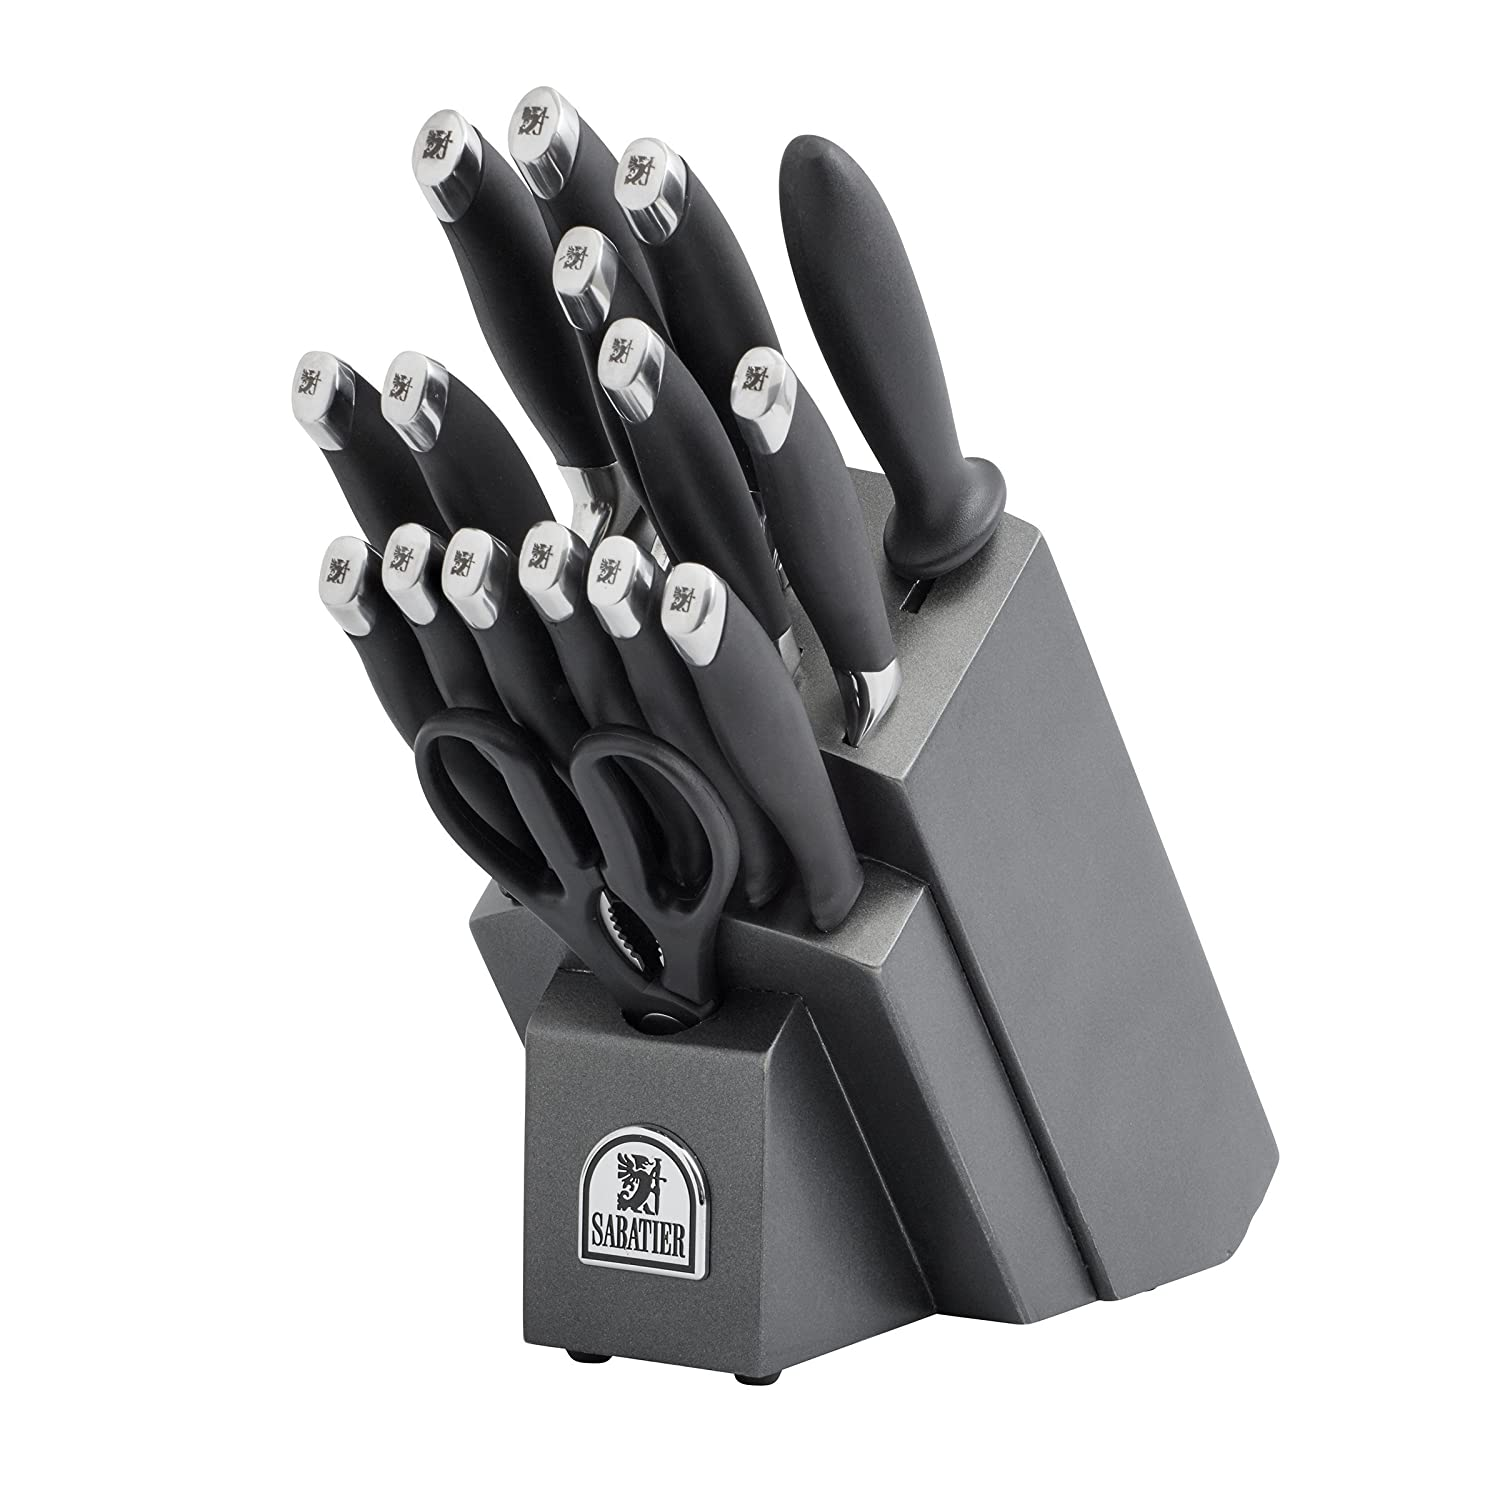 kitchenaid knife set. amazon.com: sabatier 17-piece soft grip forged stainless steel knife block set: kitchen utility knives: \u0026 dining kitchenaid set